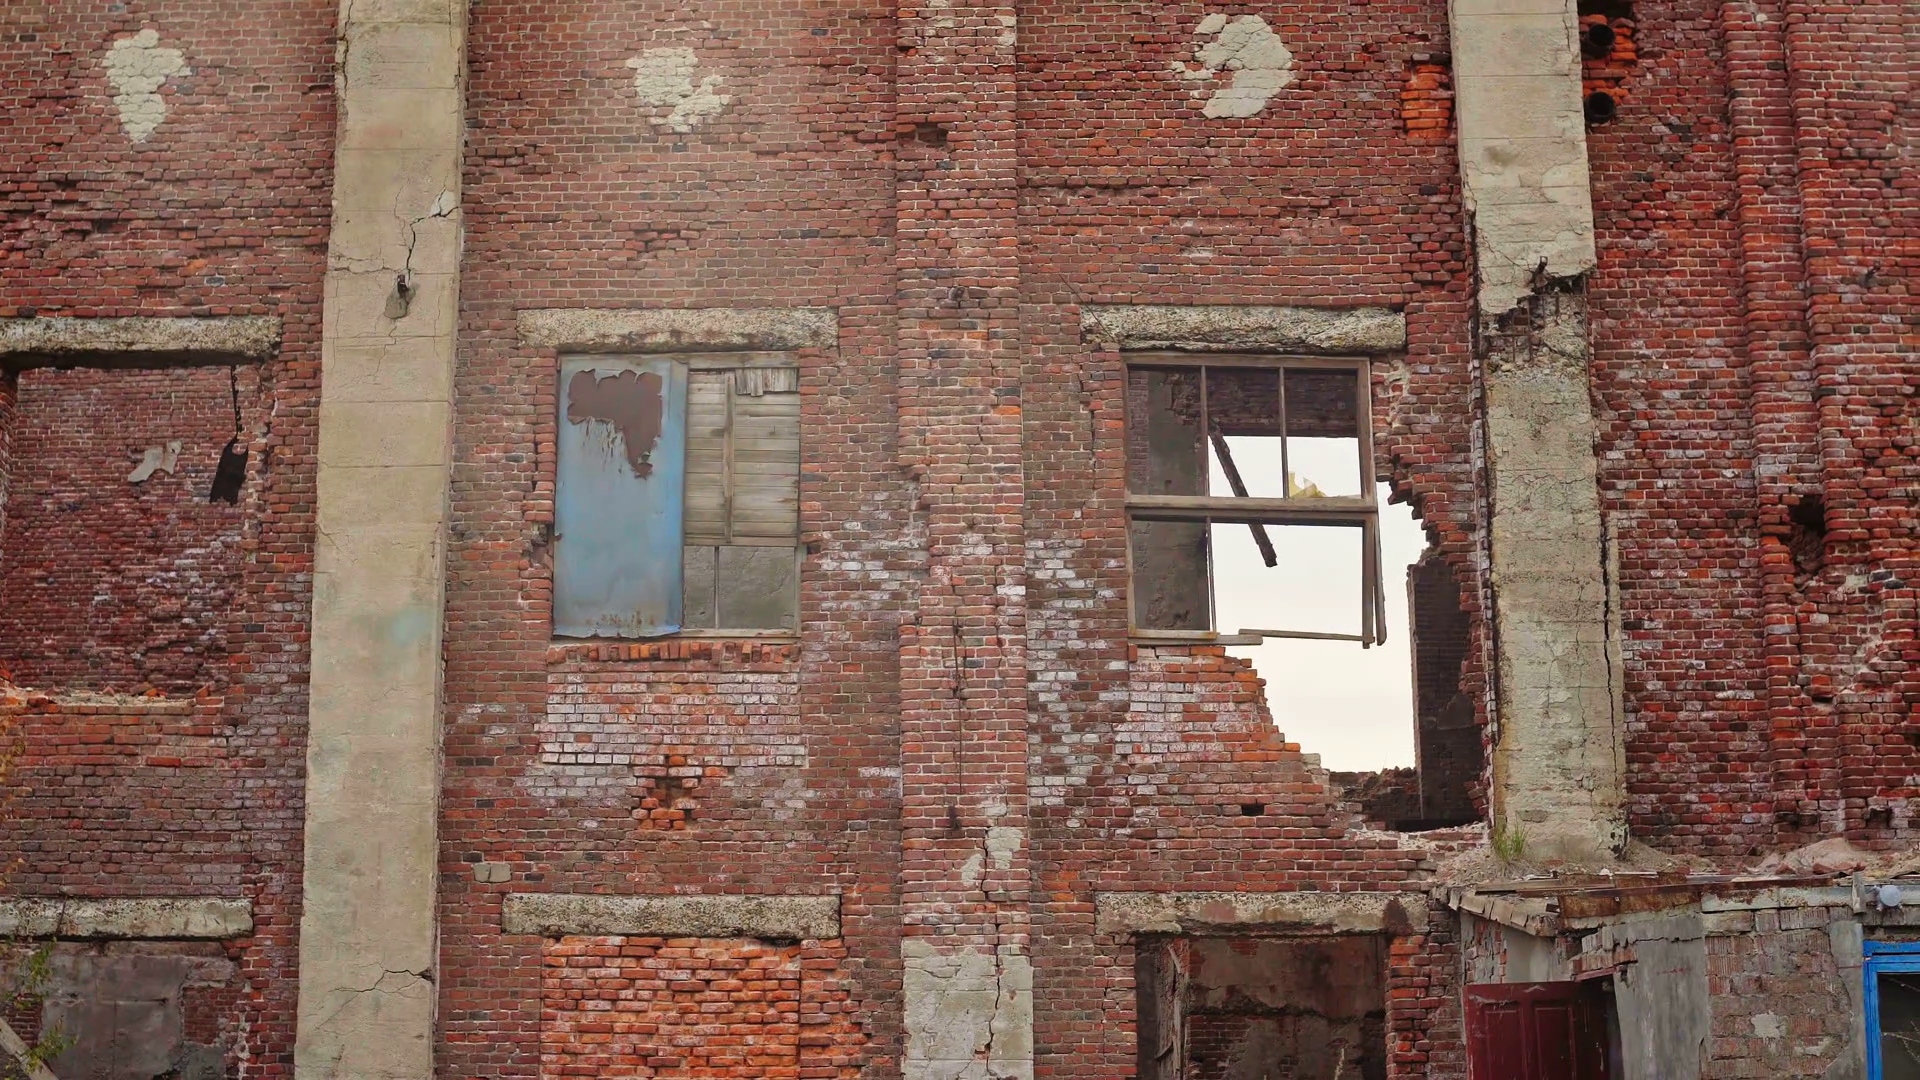 The camera zooms in on old red brick inner-city school building with ...